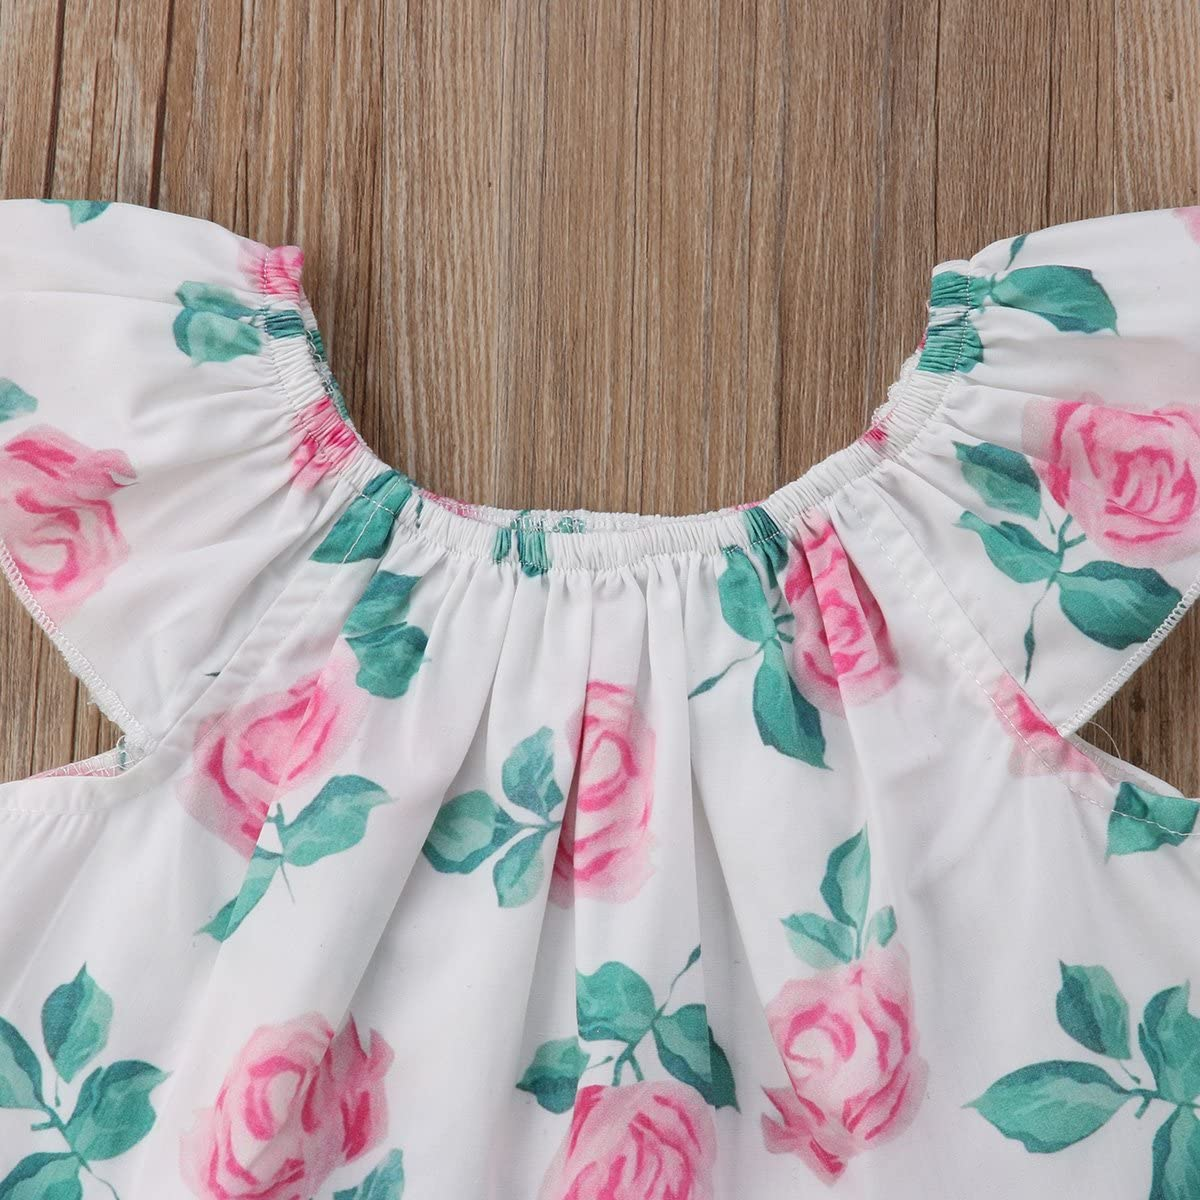 6-12M White, 80 Toddler Kids Baby Girls Flower Clothes T-Shirt Tops+Denim Shorts 2pcs Outfits Set